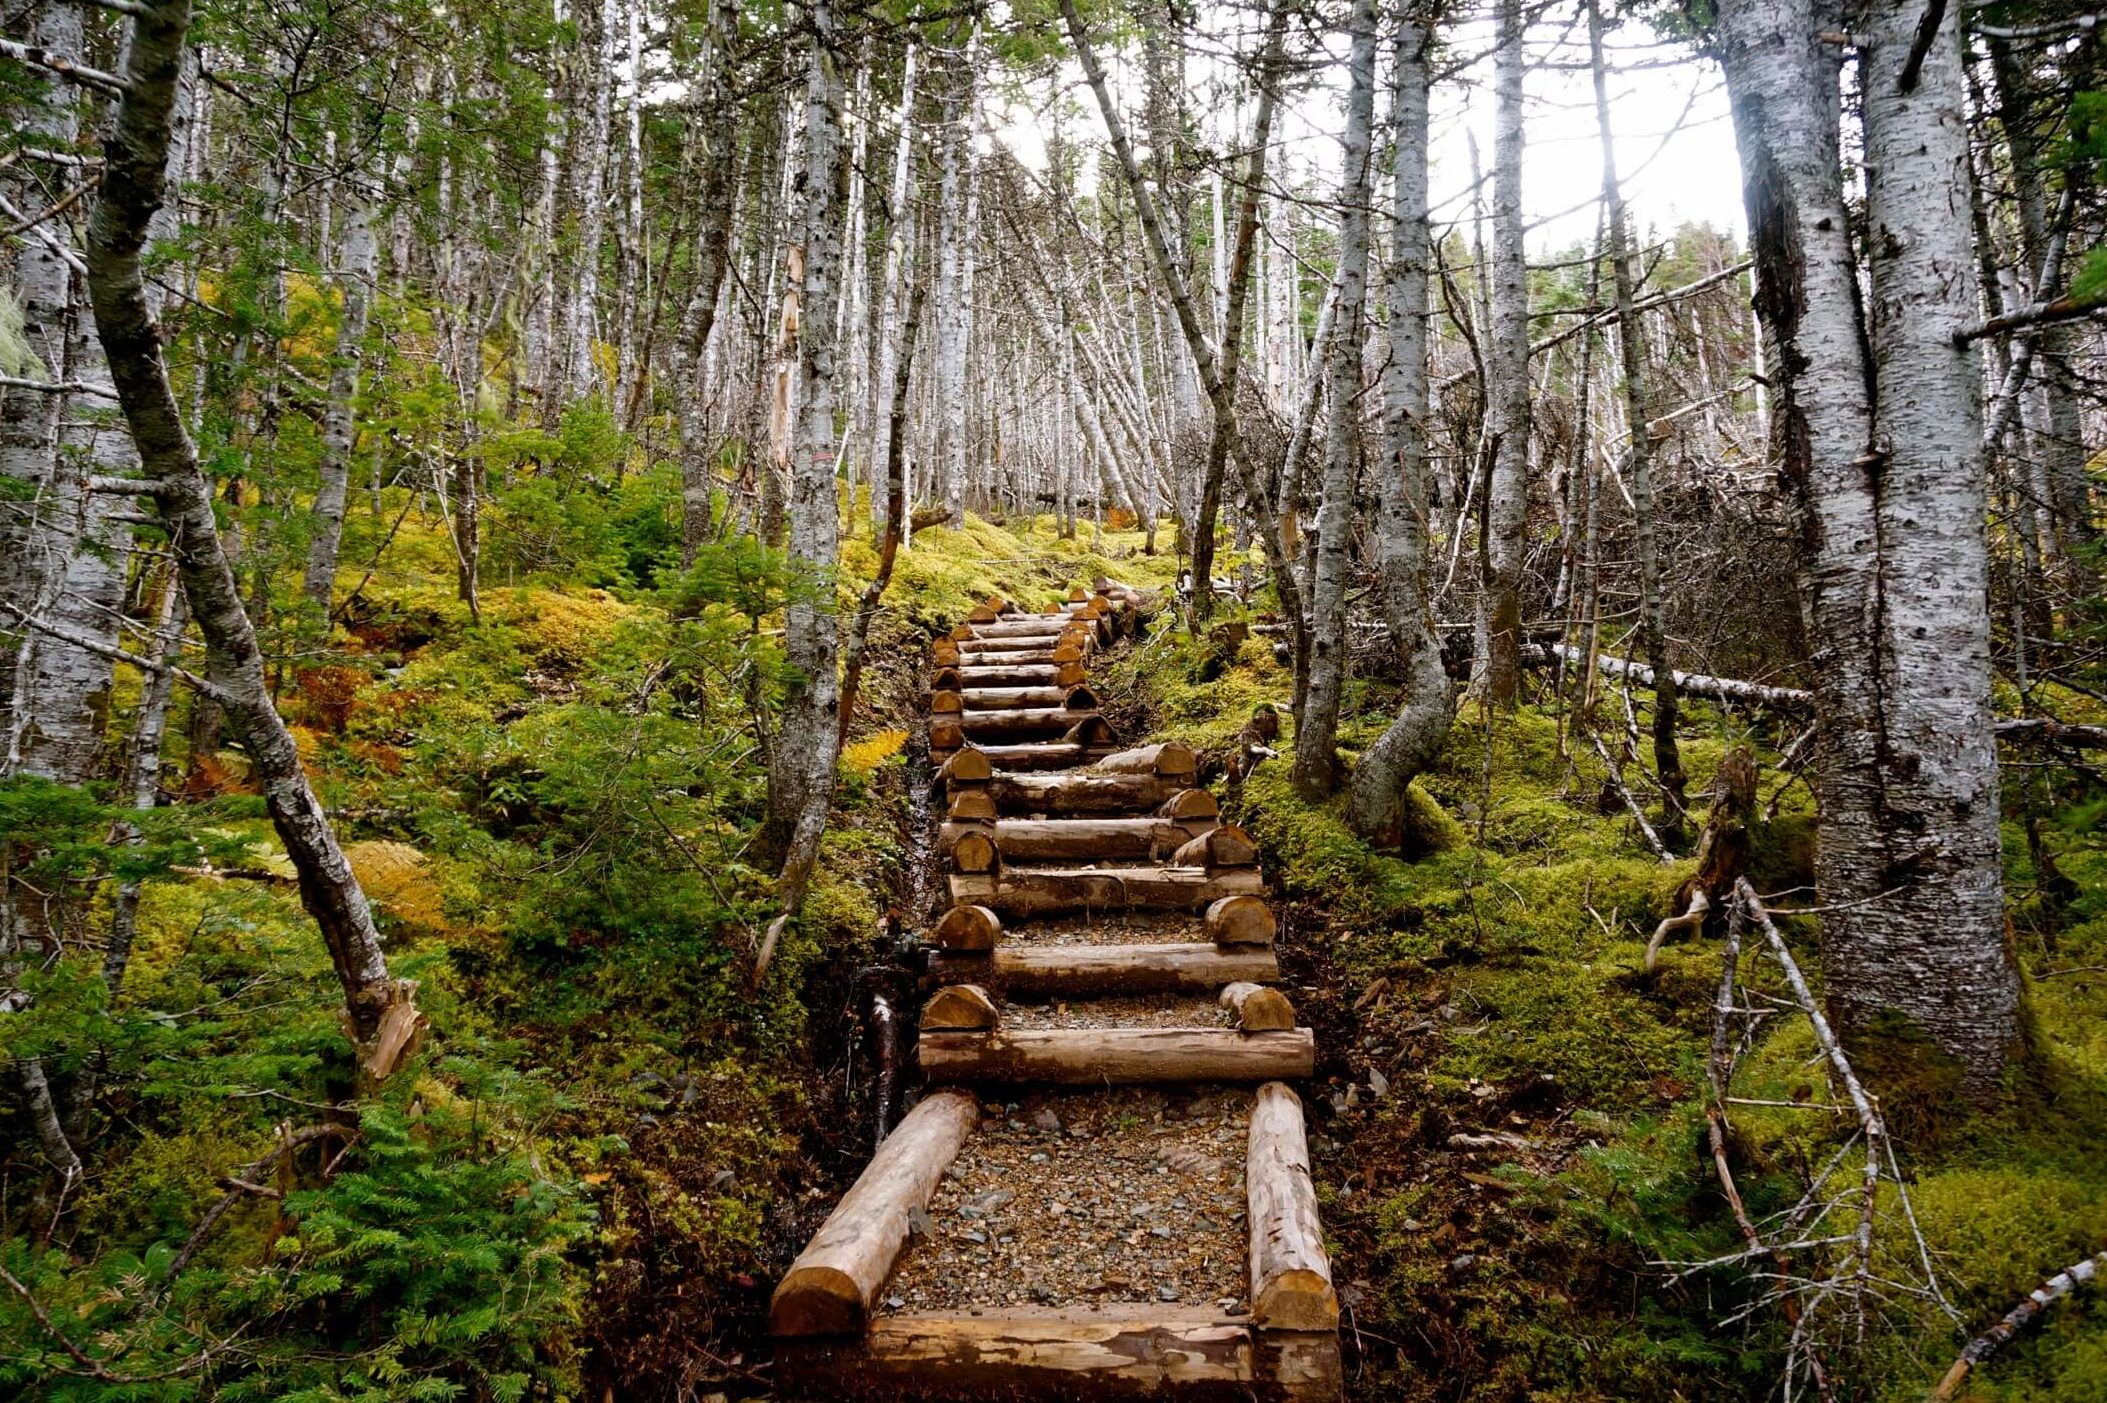 A wooden staircase leads walkers through the trees